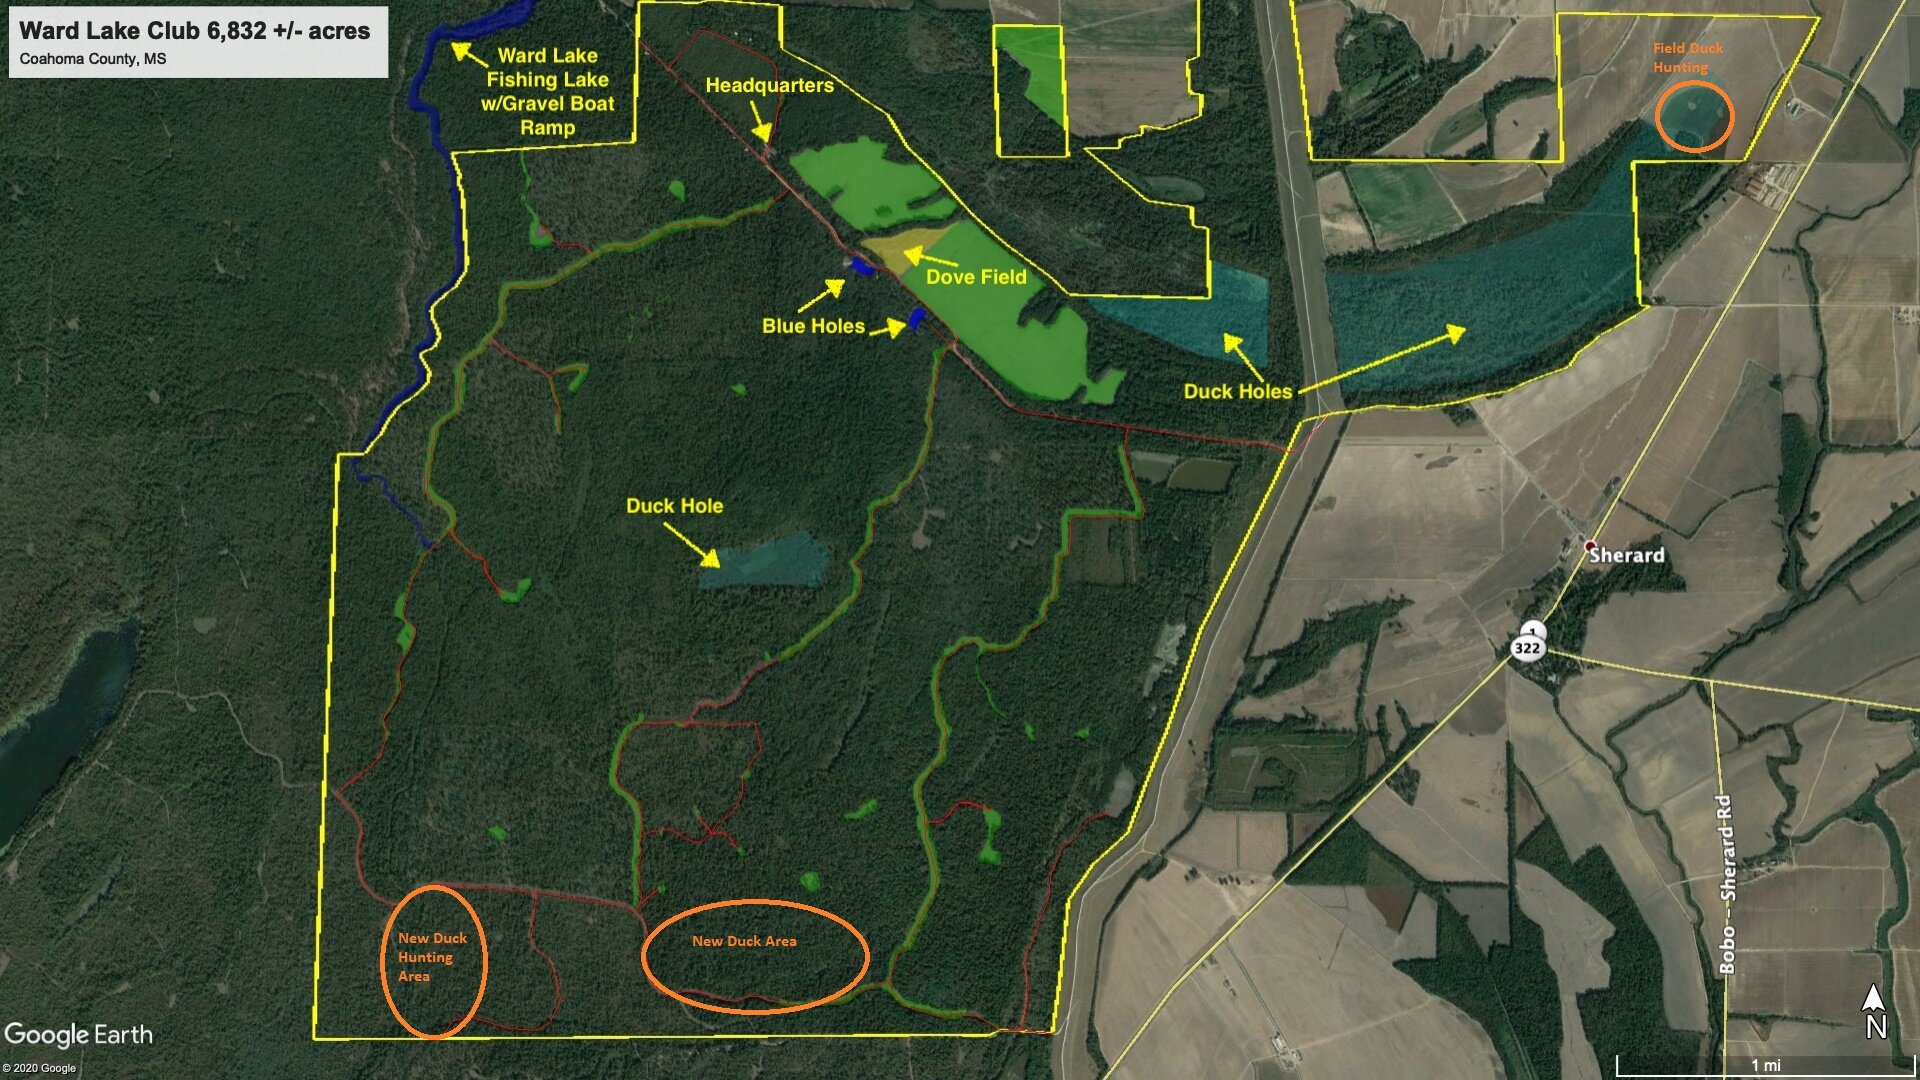 Ward Lake Aerial - Road Map with Duck Hunting copy.jpg